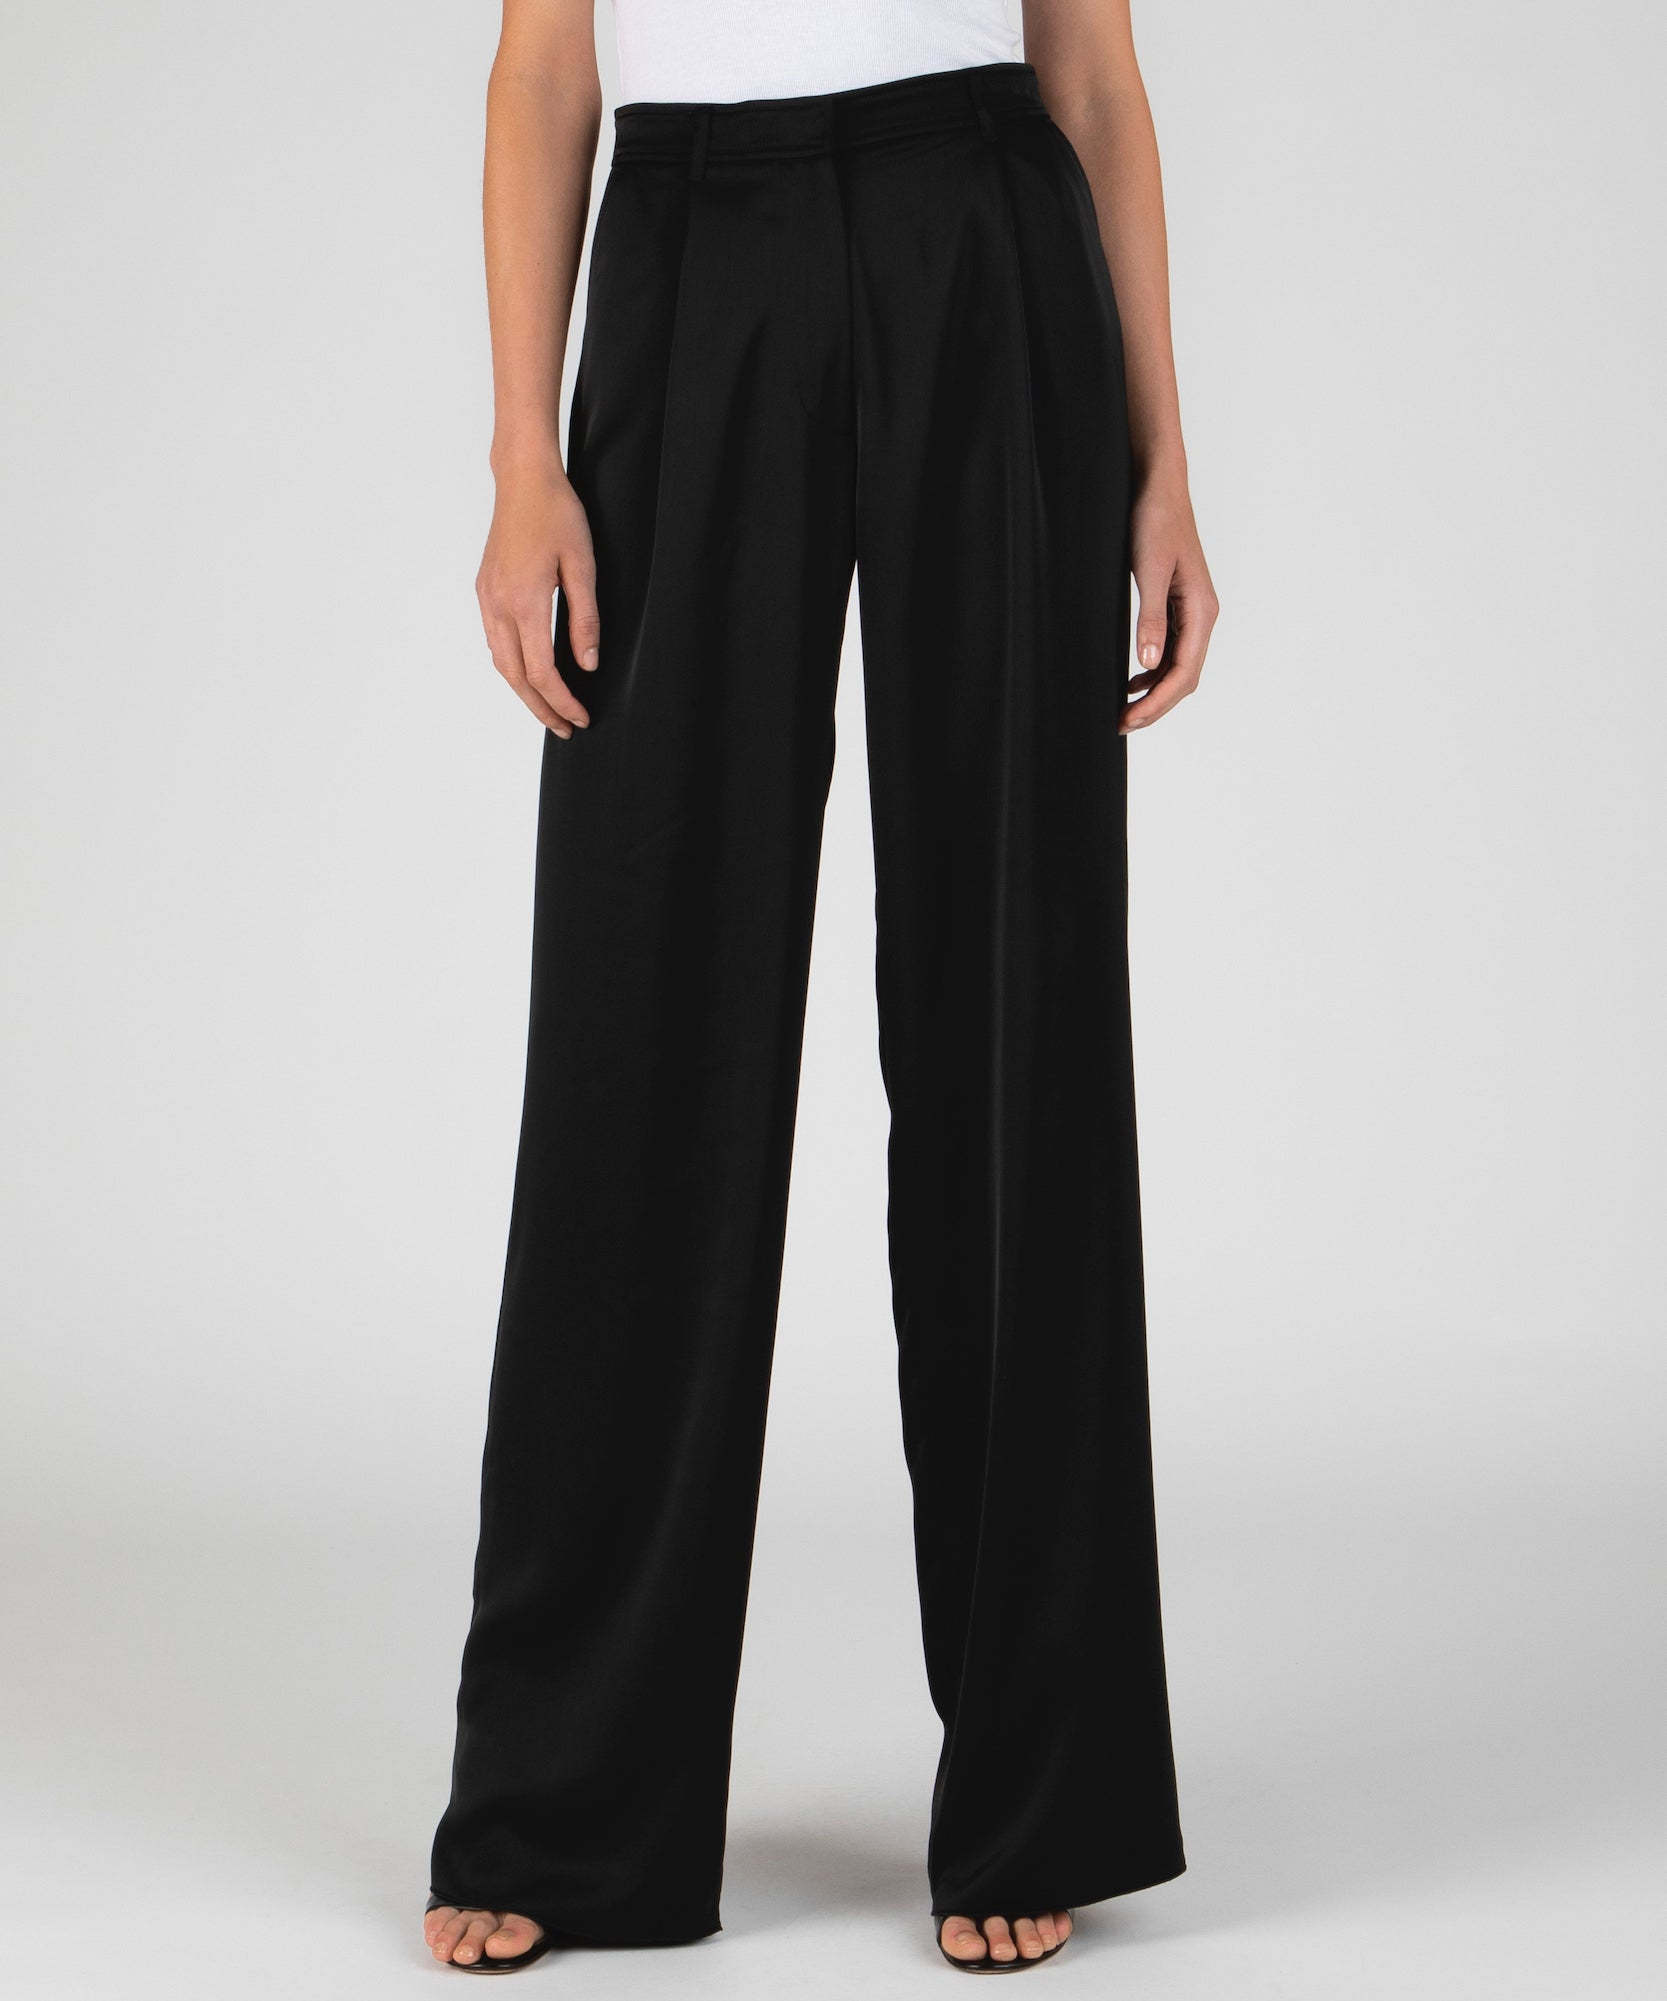 Black Wide Leg Easy Pants - Women's Luxe Pants ATM Anthony Thomas Melillo